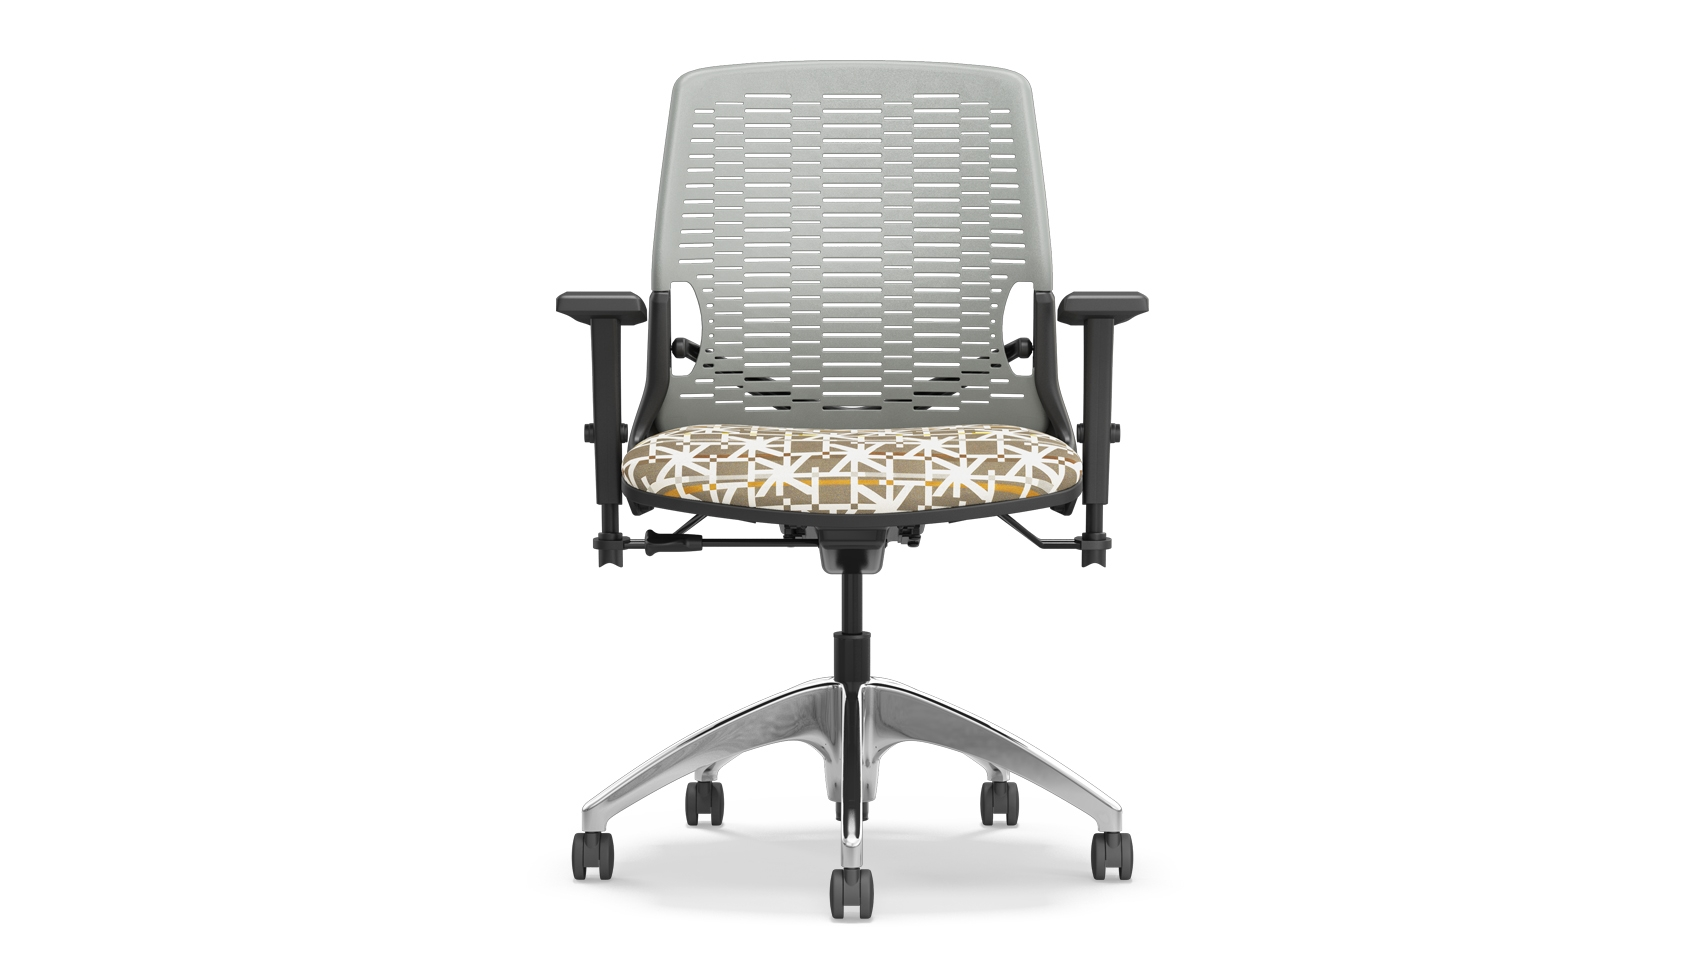 Highmark Intouch Office Chair